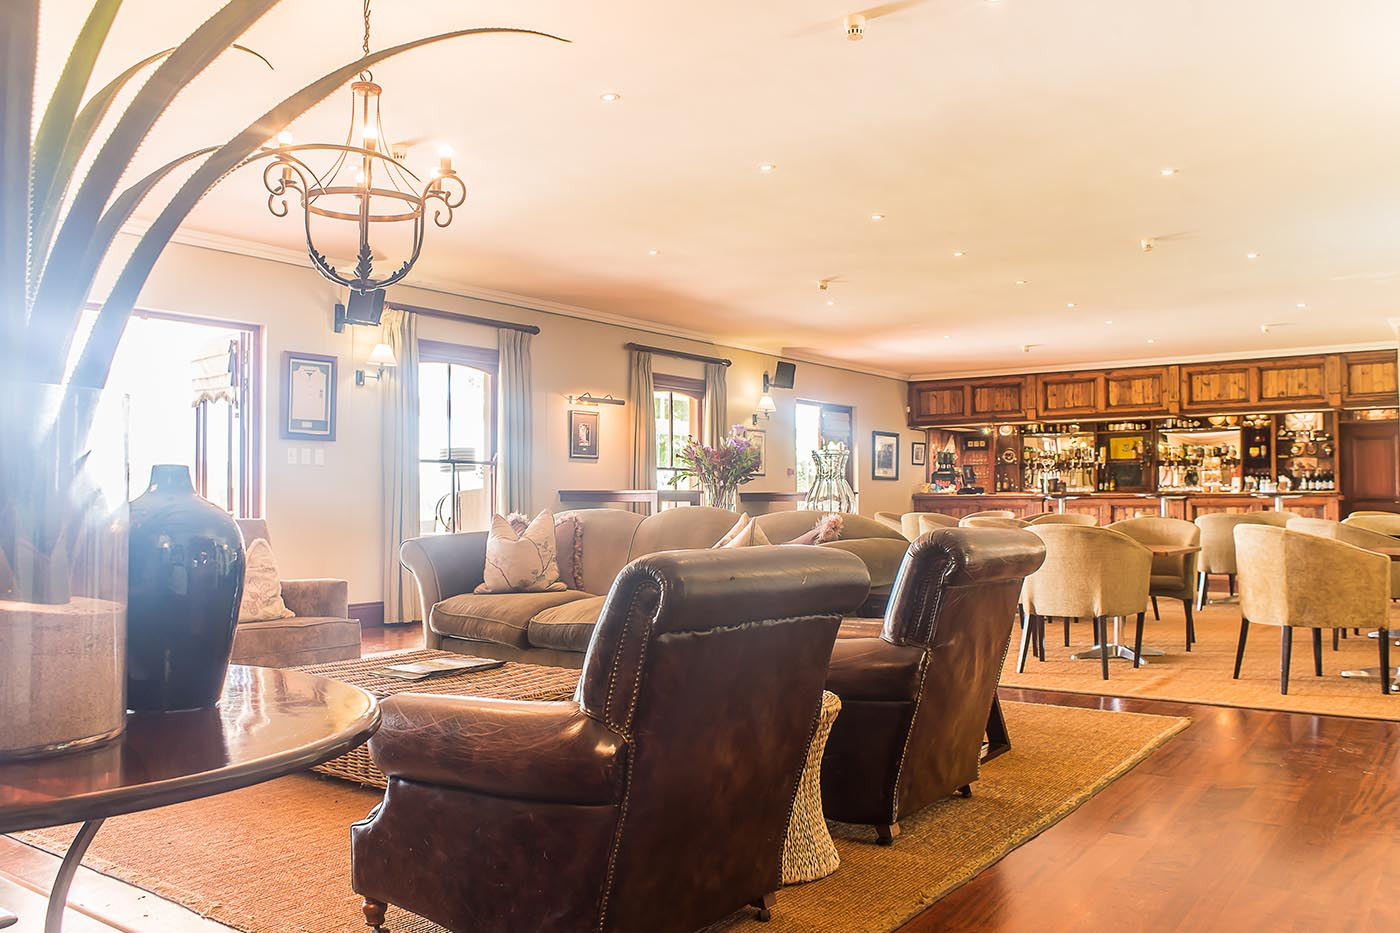 homeowners-gowrie-club-house-golf-lodge-property-midlands-drakensberg-Nottingham-Road